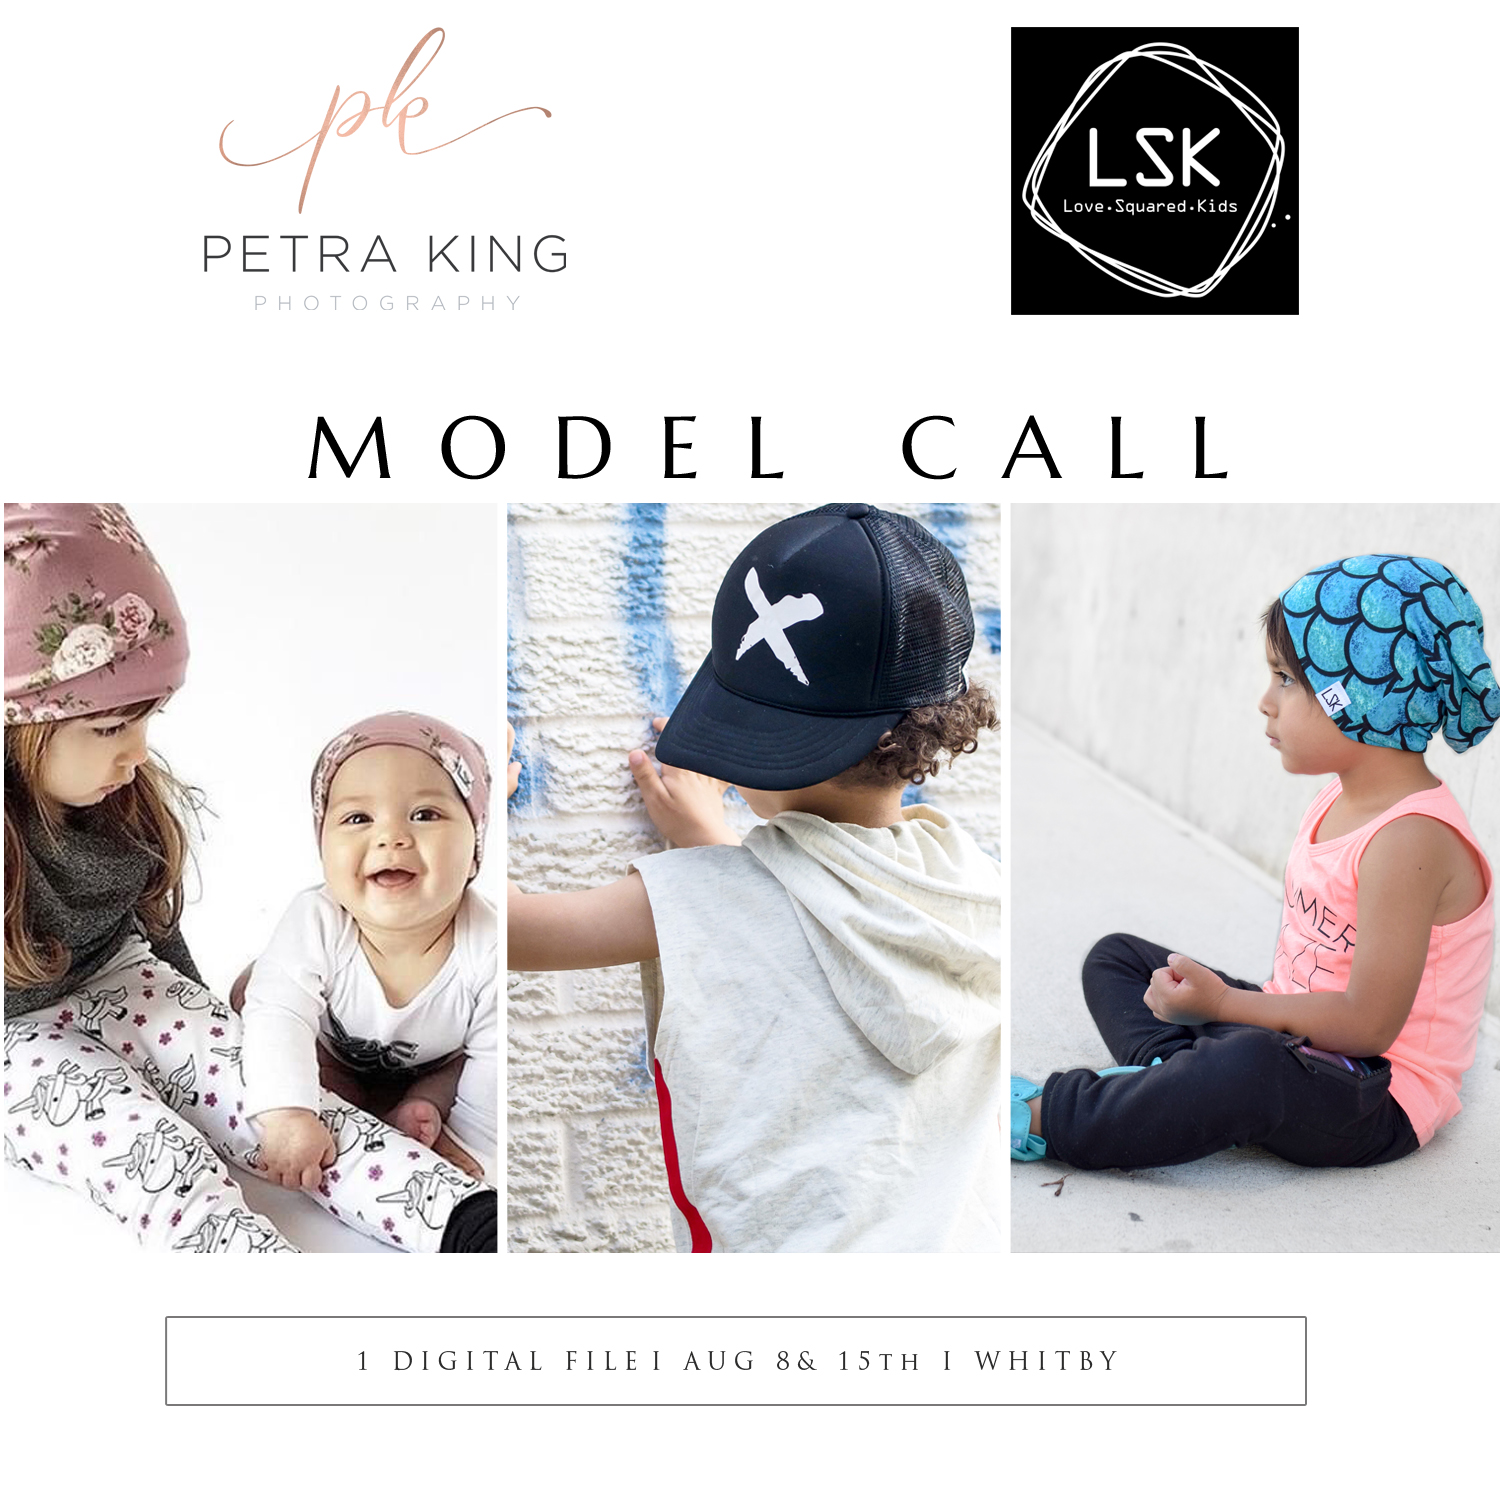 Oshawa_Whitby_LSK_Petra_King_Photography_ModelCall